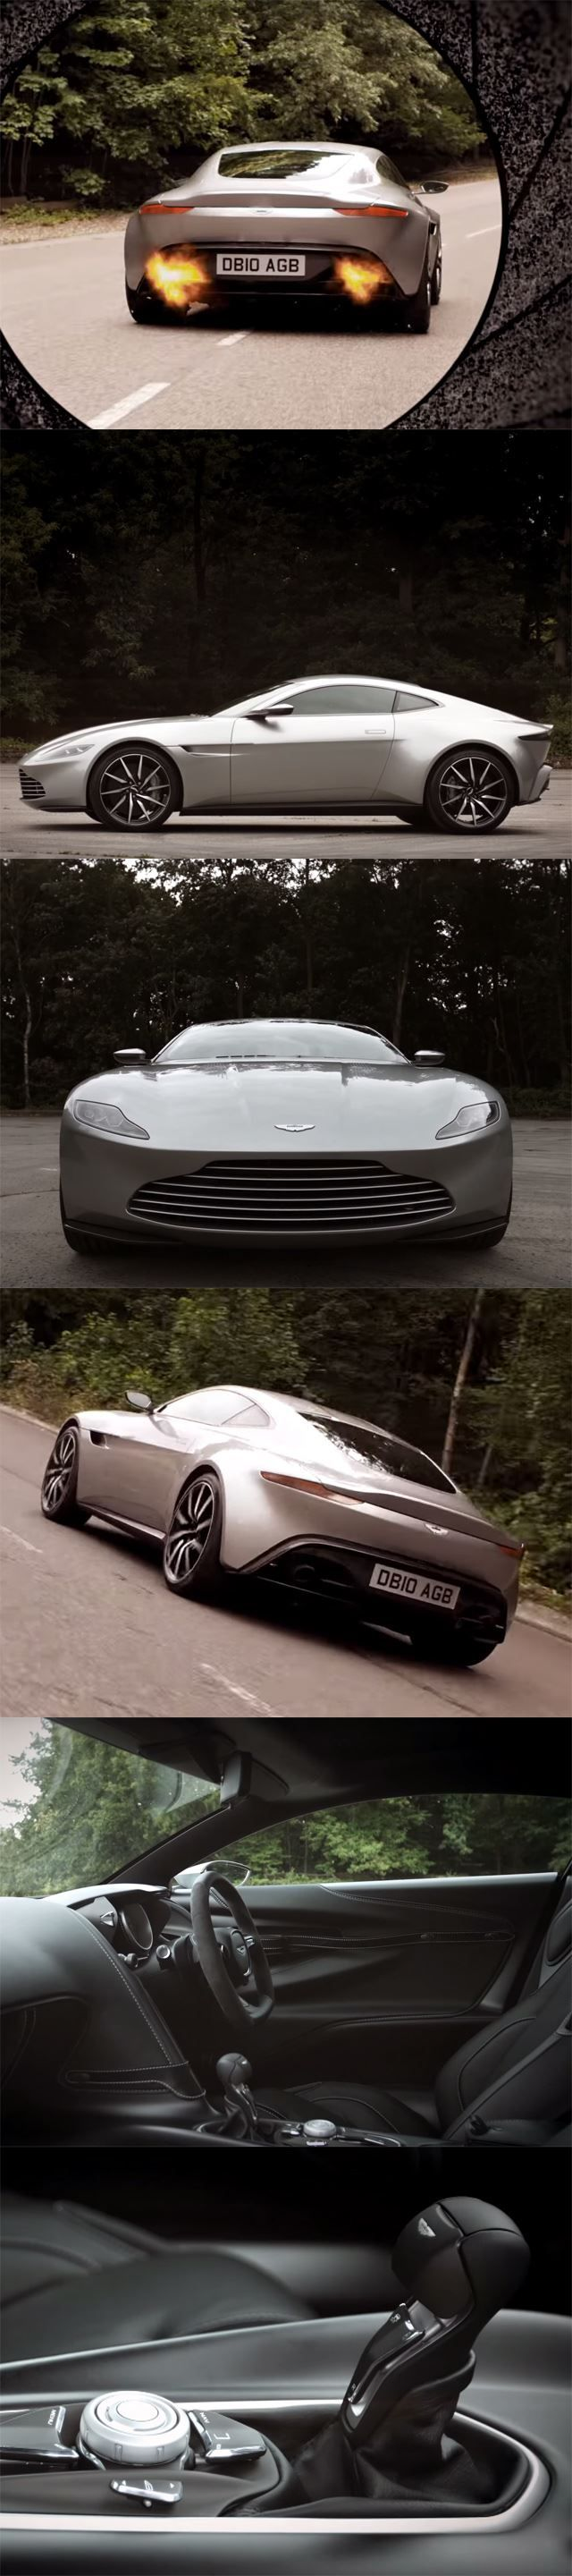 The new custom-made Aston Martin DB10 only for The Double O Agent, James Bond!